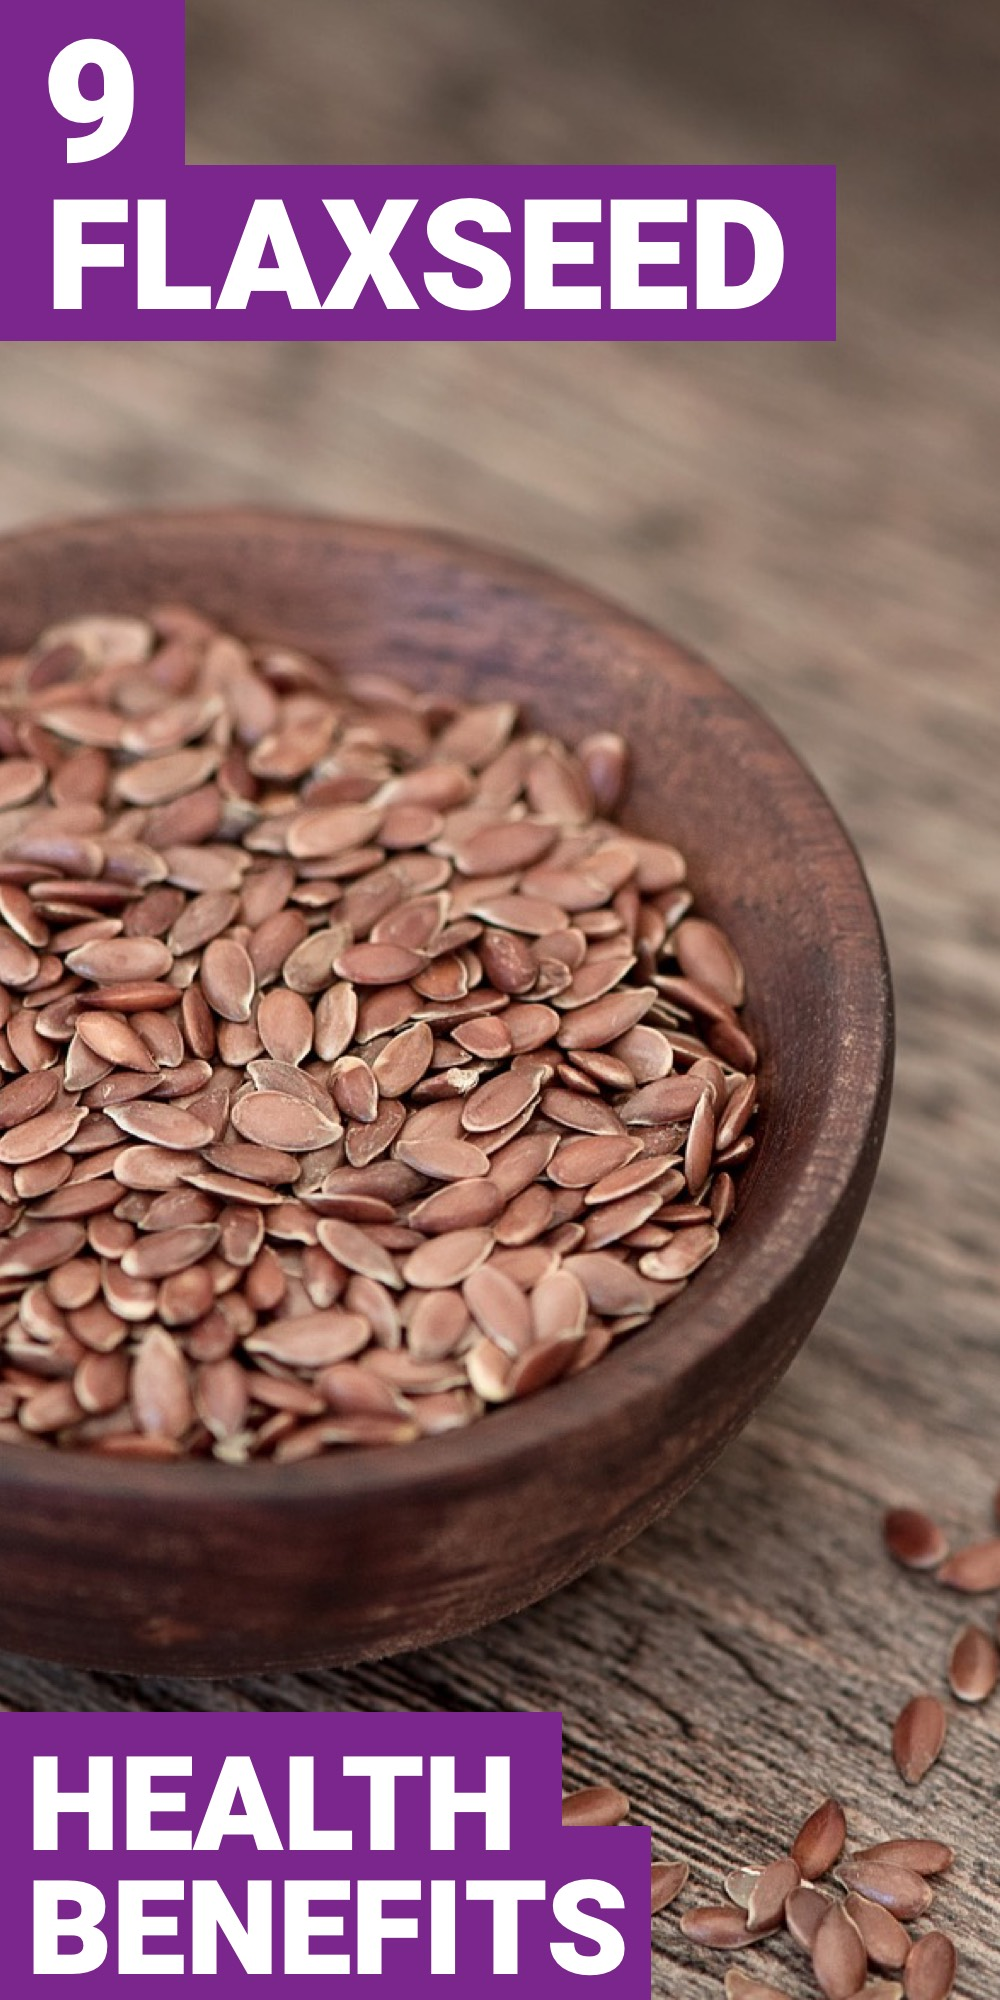 Using flaxseed in your diet is guaranteed to improve your health. Here are 9 health benefits of flaxseed.